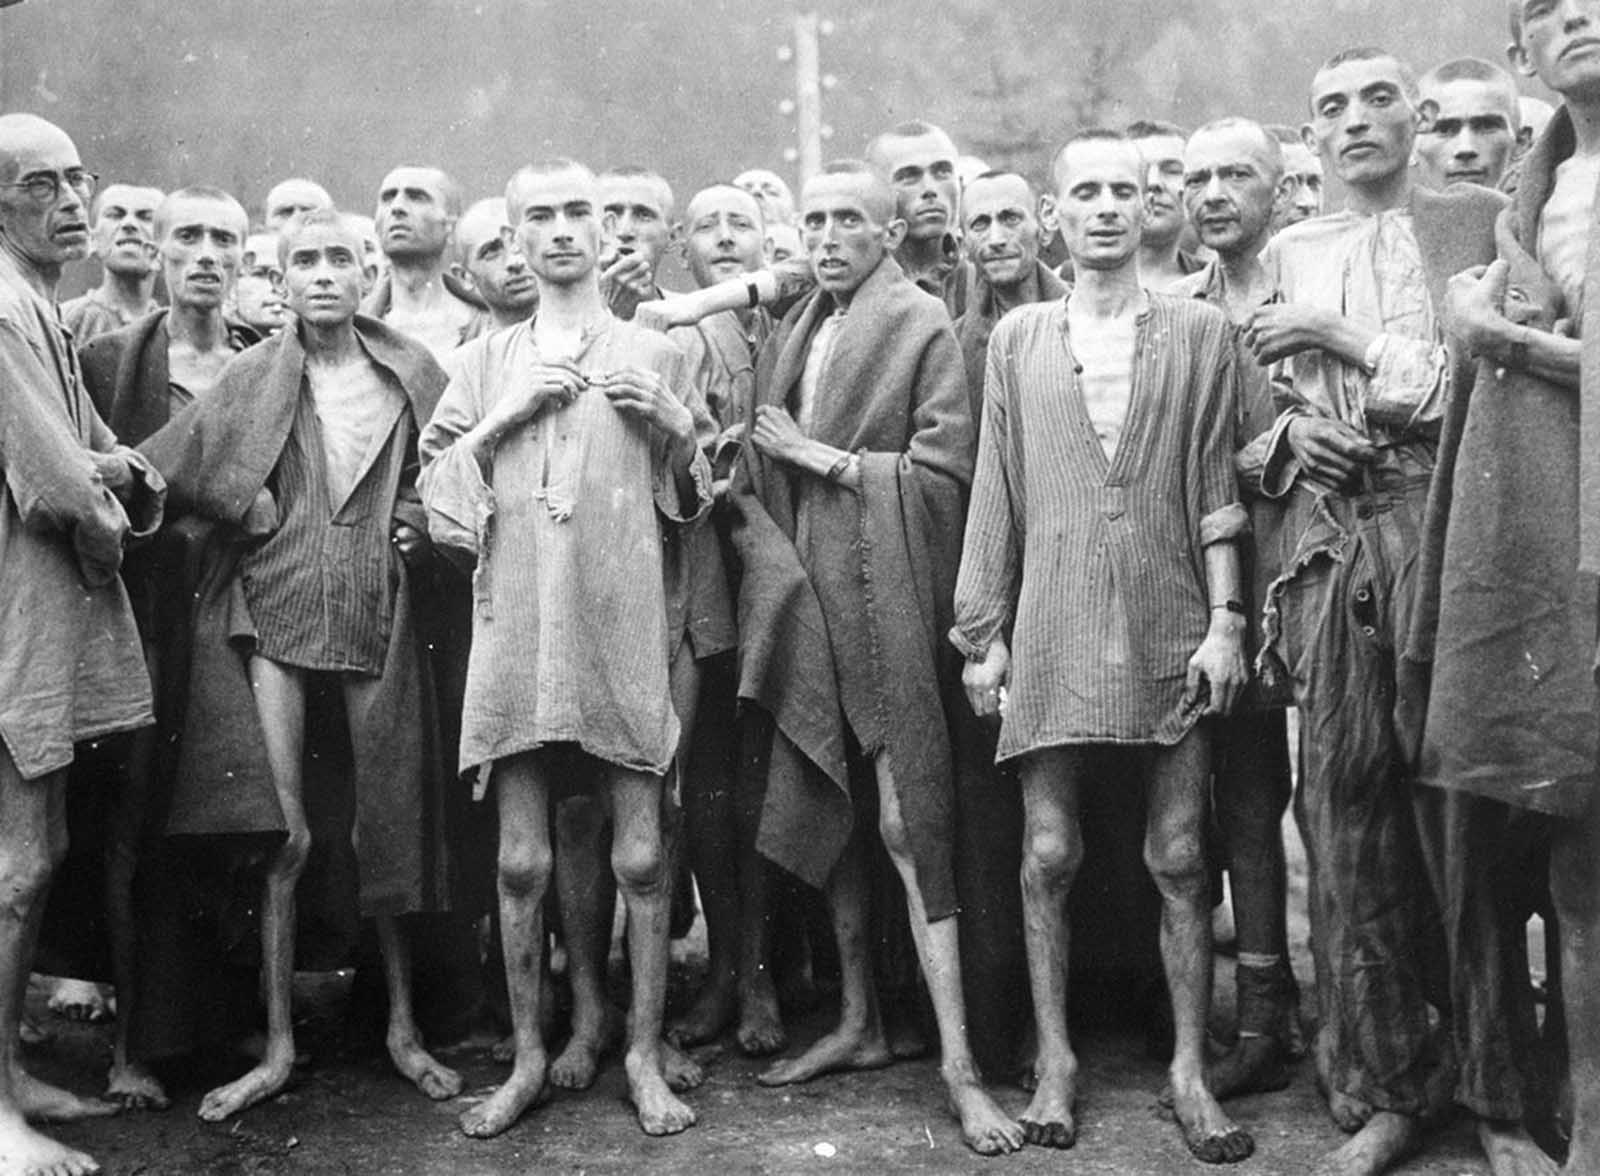 Starved prisoners, nearly dead from hunger, pose in a concentration camp in Ebensee, Austria, on May 7, 1945. The camp was reputedly used for